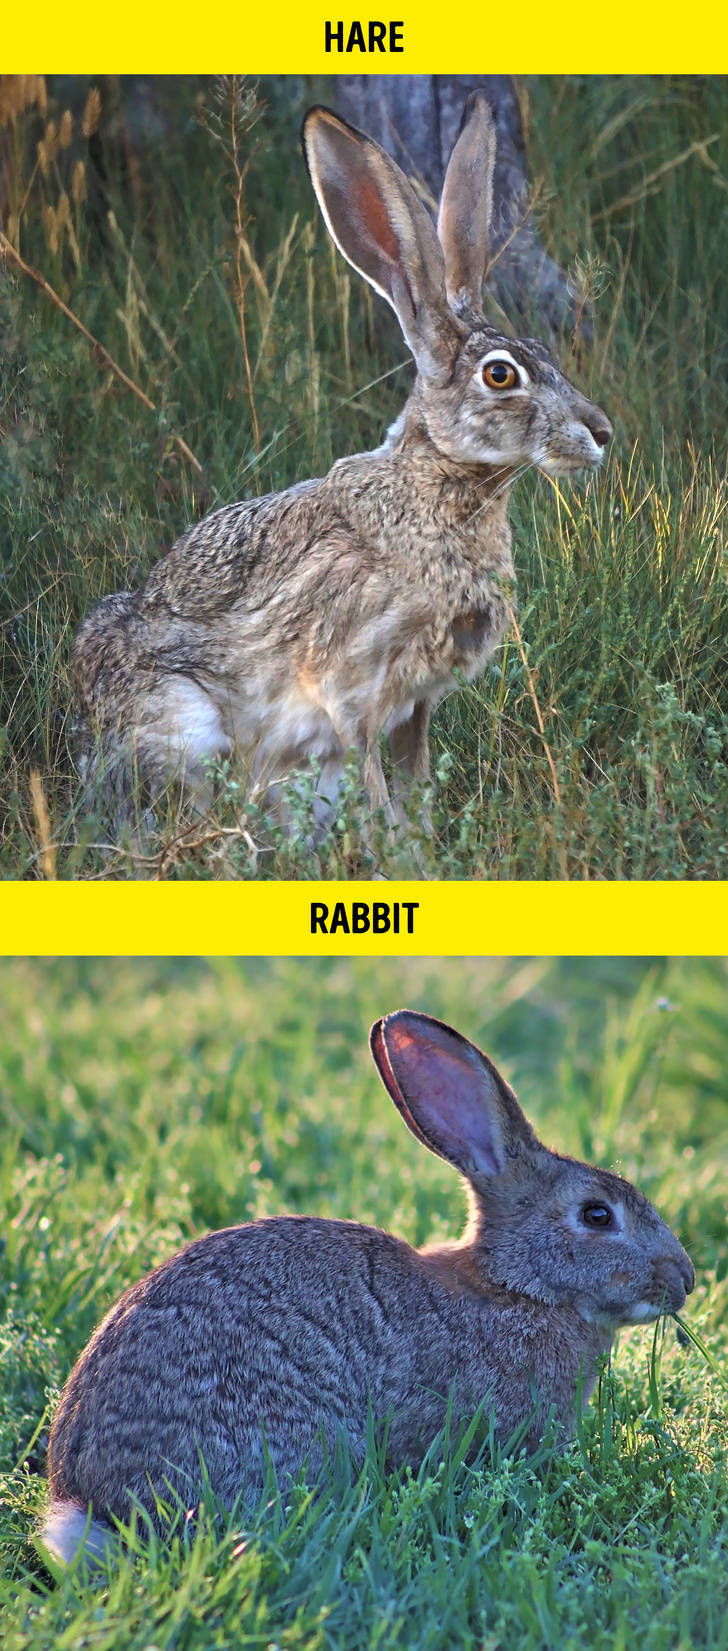 These Are NOT The Same Animals!